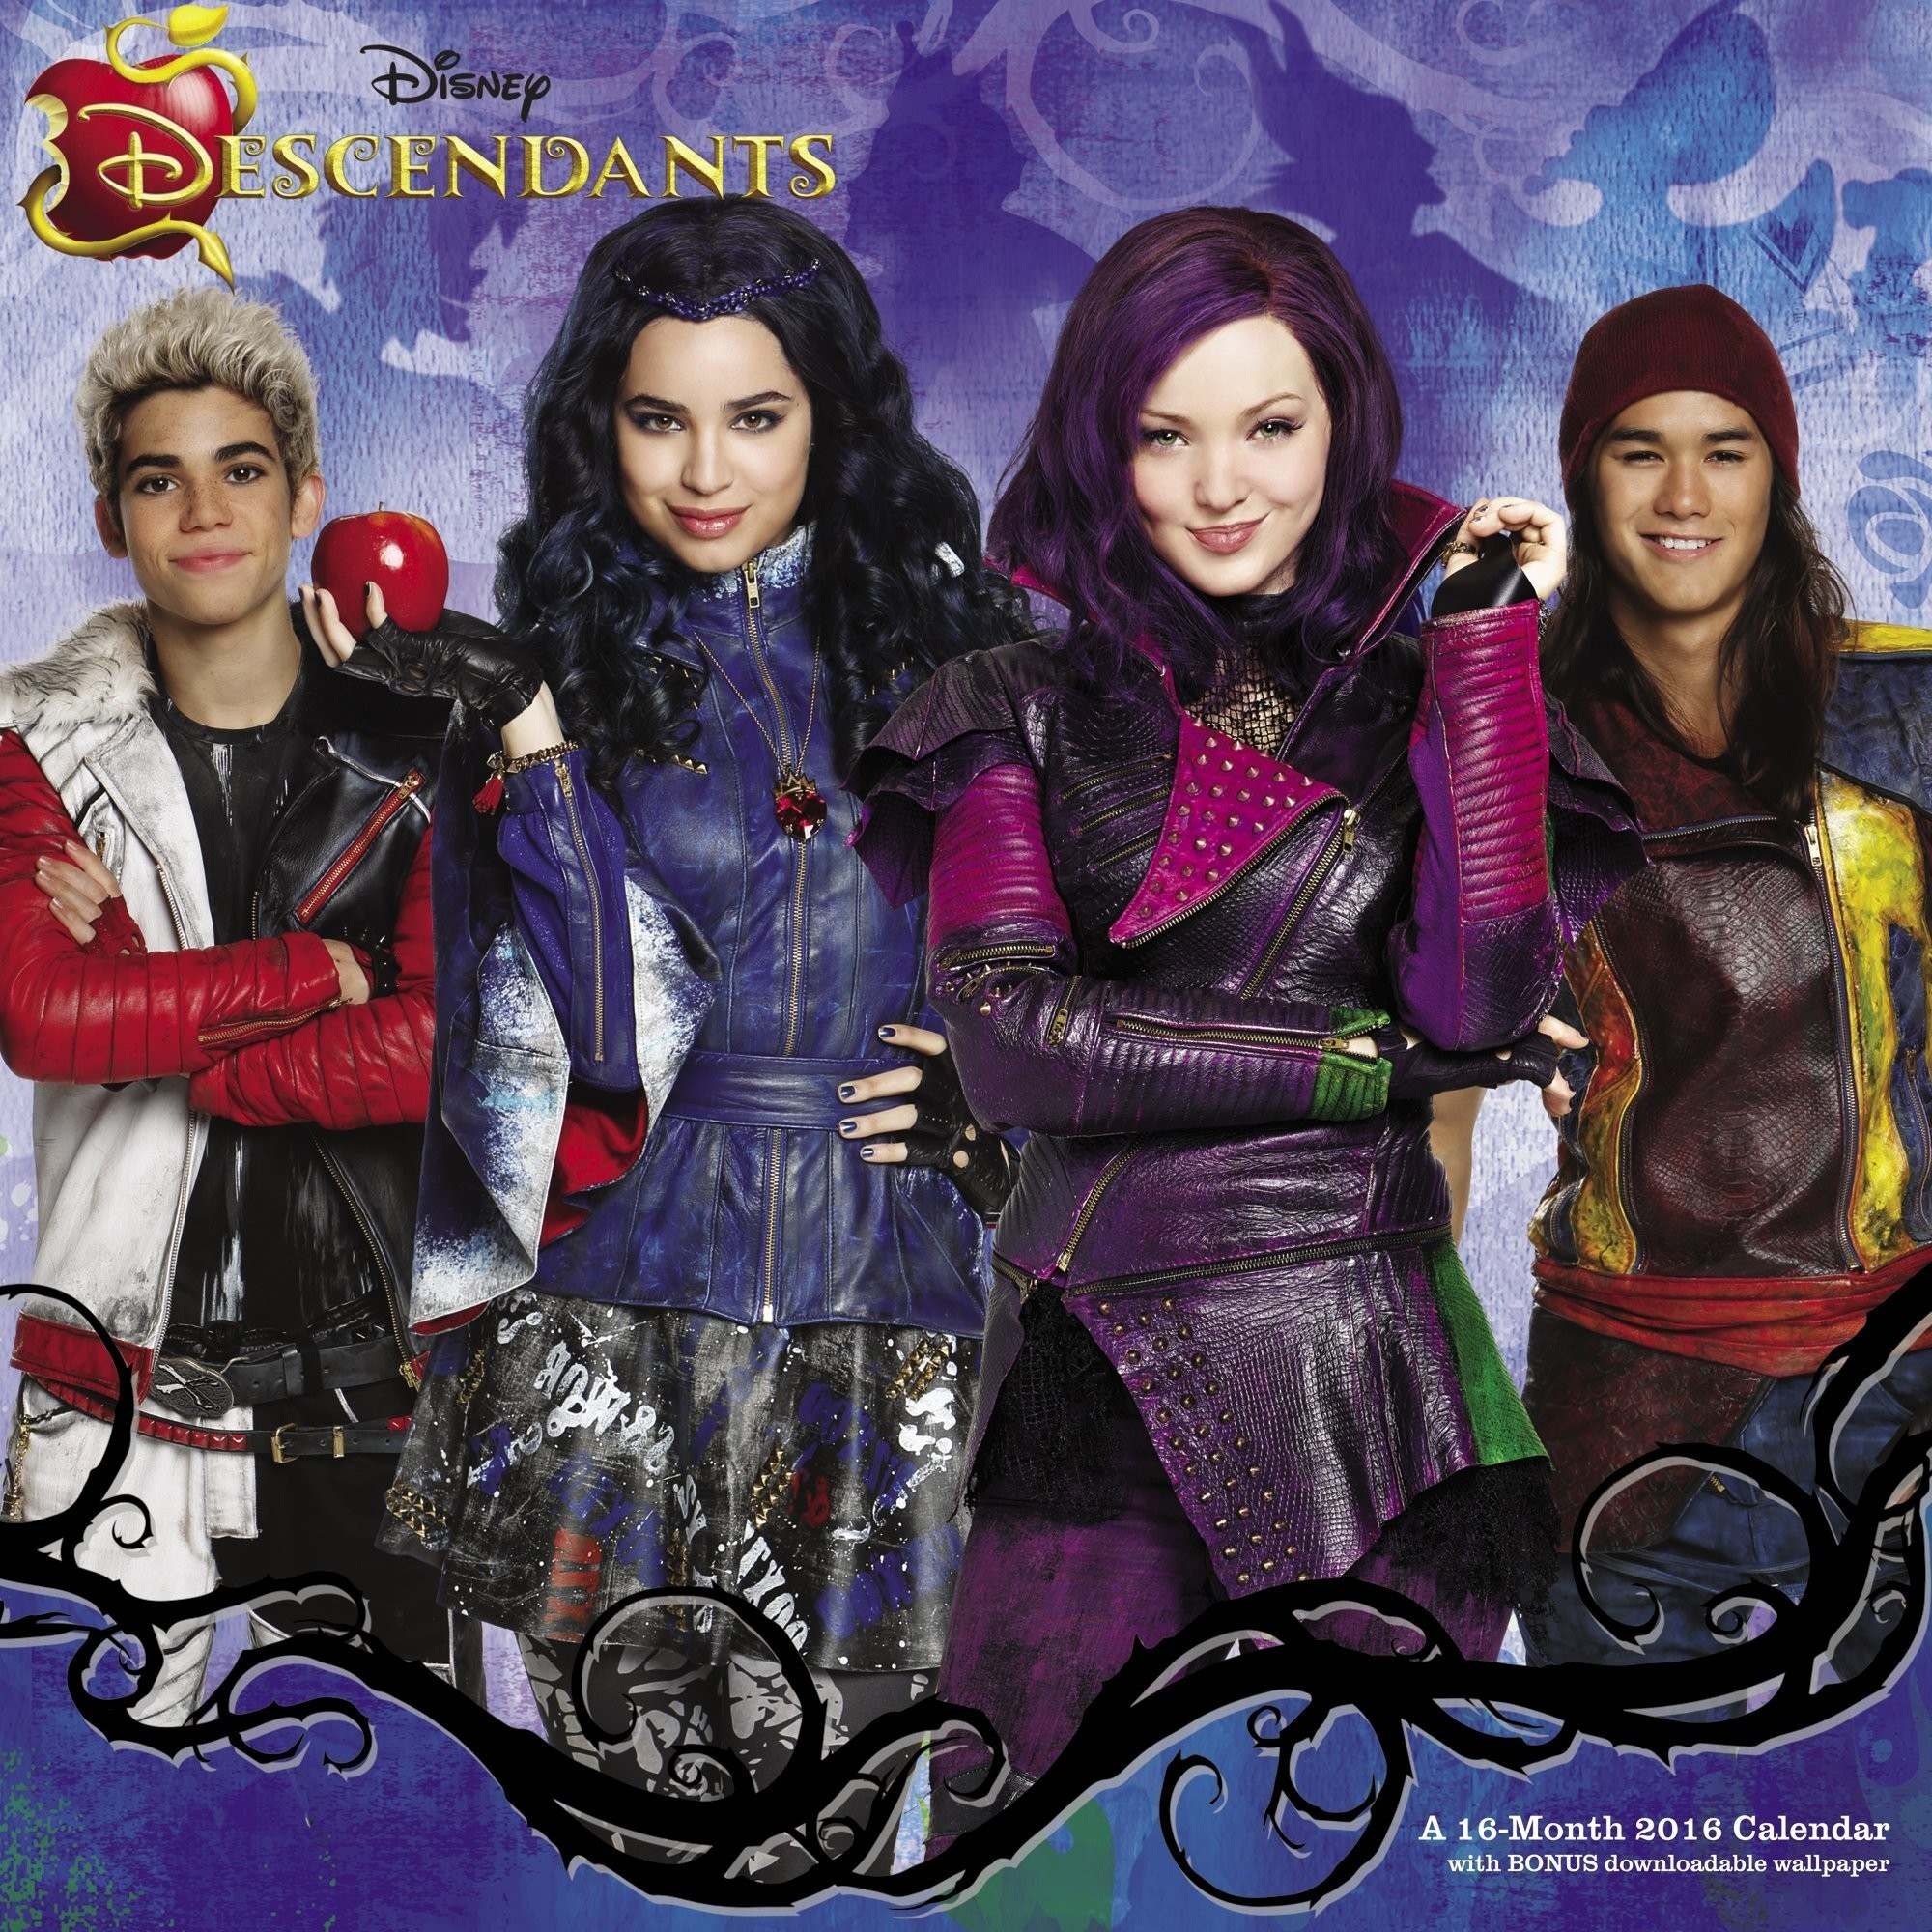 Descendants Wallpapers 62 images 2000x2000